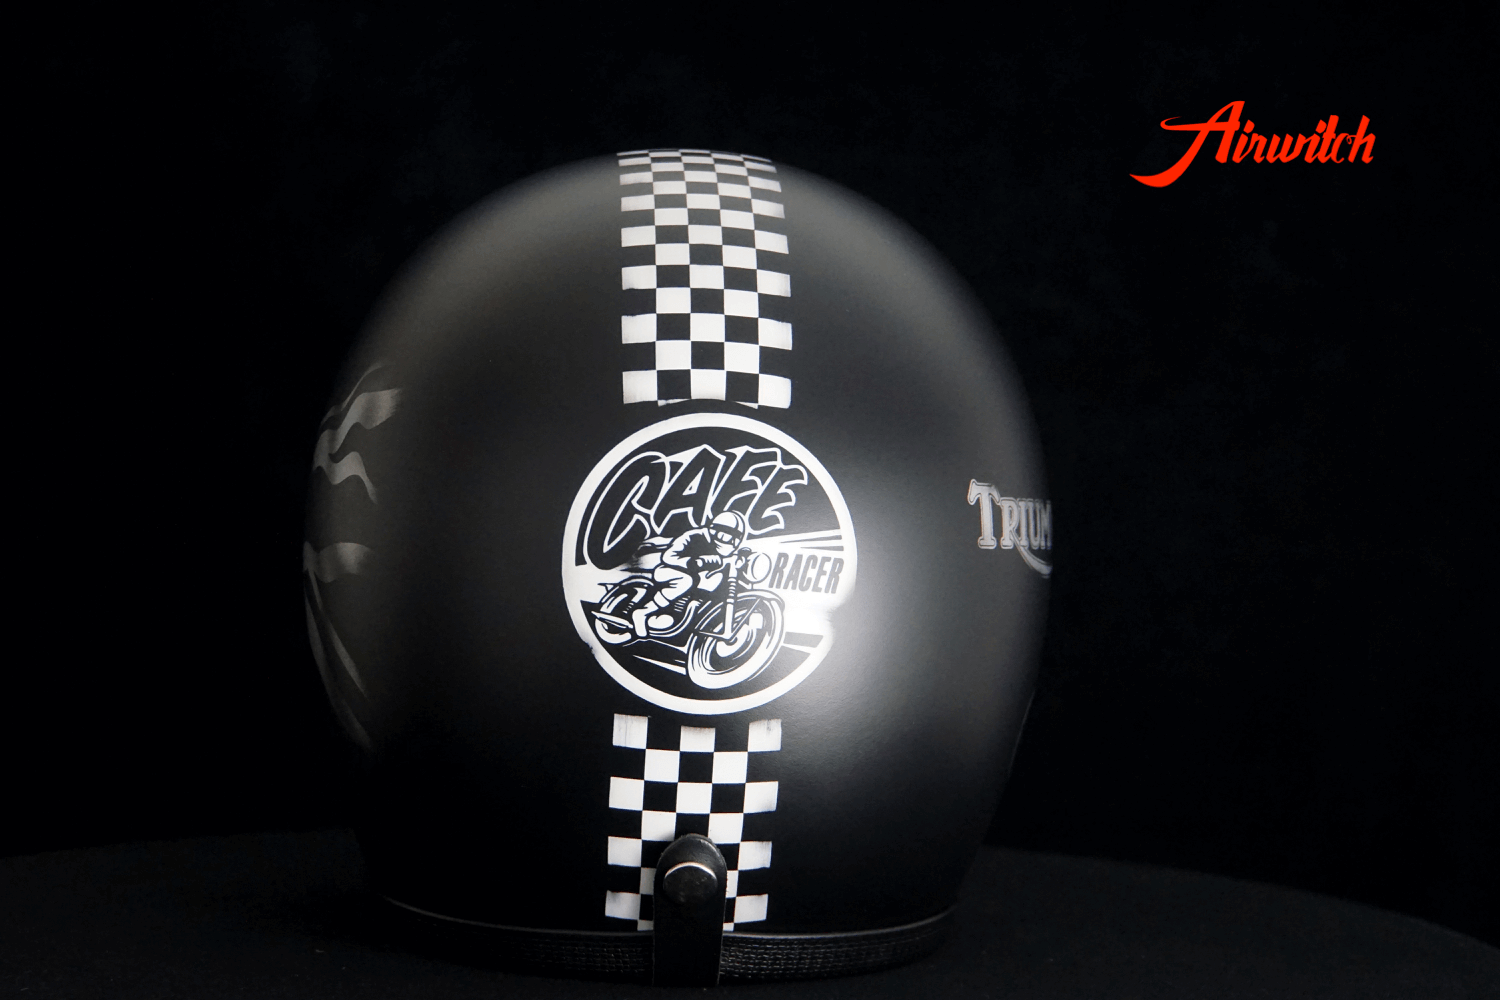 Cafe Racer Airbrush GB chequered flag black silver Airwitch